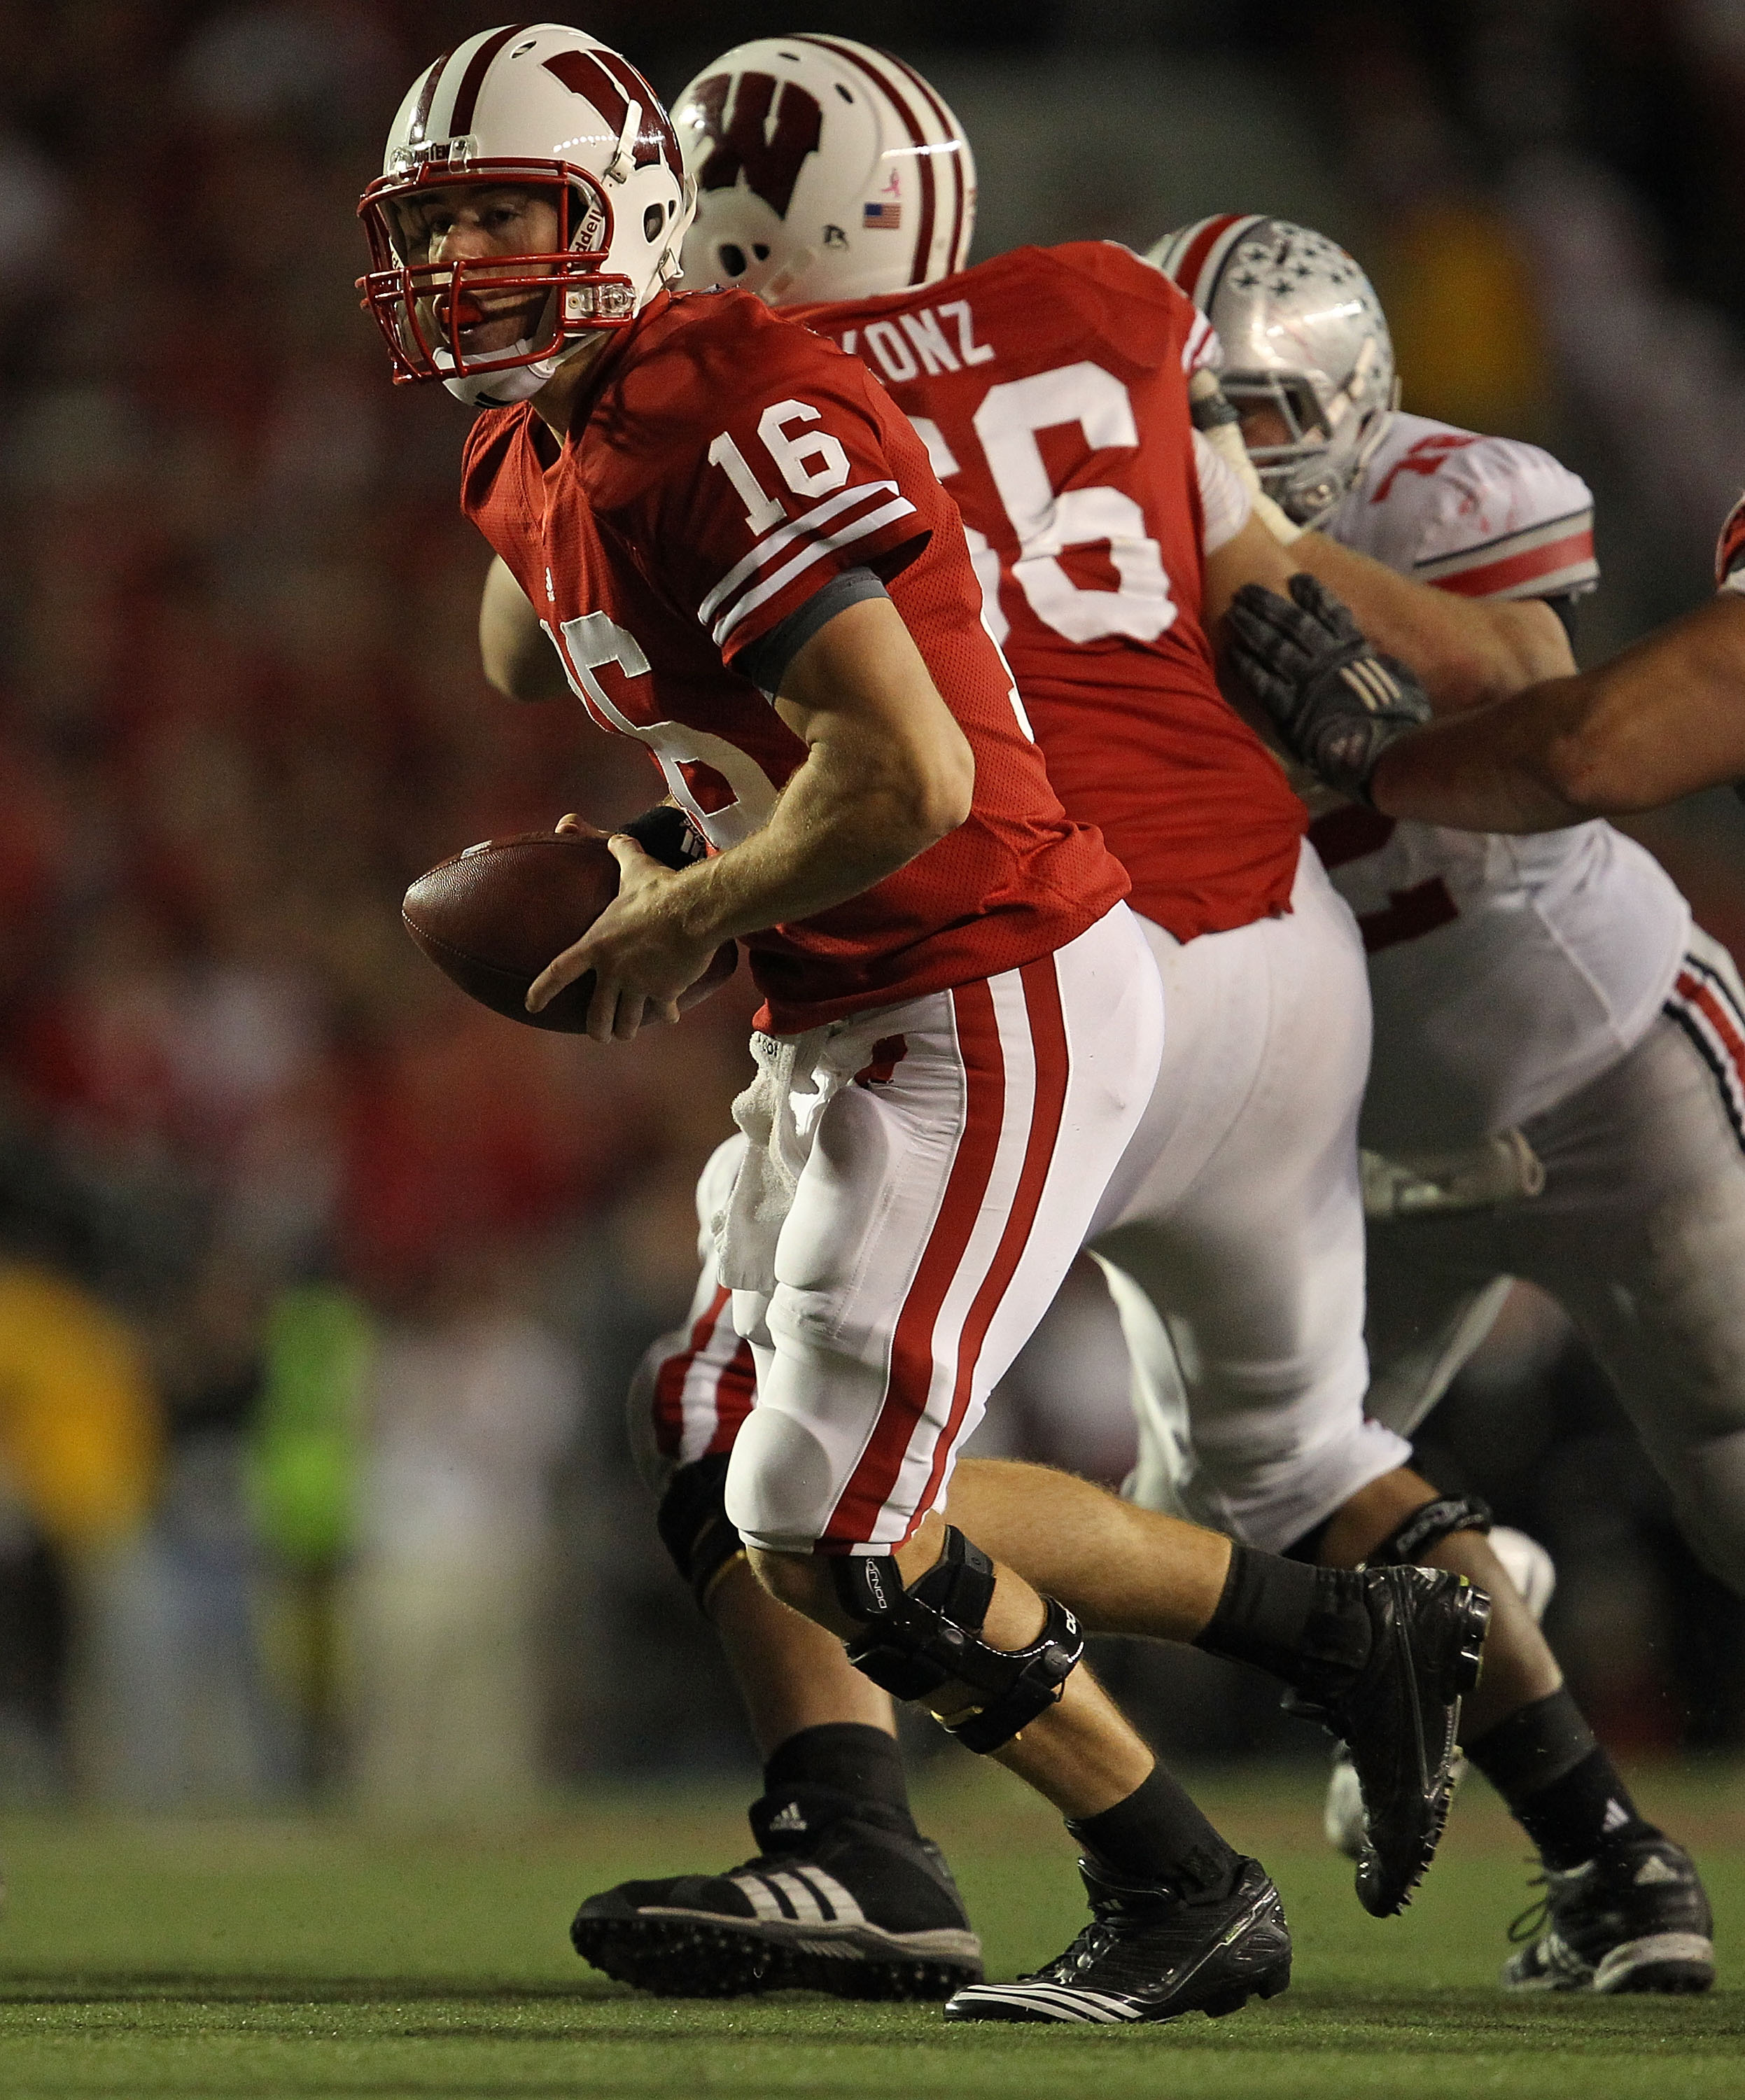 MADISON, WI - OCTOBER 16: Scott Tolzien #16 of the Wisconsin Badgers turns to hand-off against the Ohio State Buckeyes at Camp Randall Stadium on October 16, 2010 in Madison, Wisconsin. Wisconsin defeated Ohio State 31-18. (Photo by Jonathan Daniel/Getty